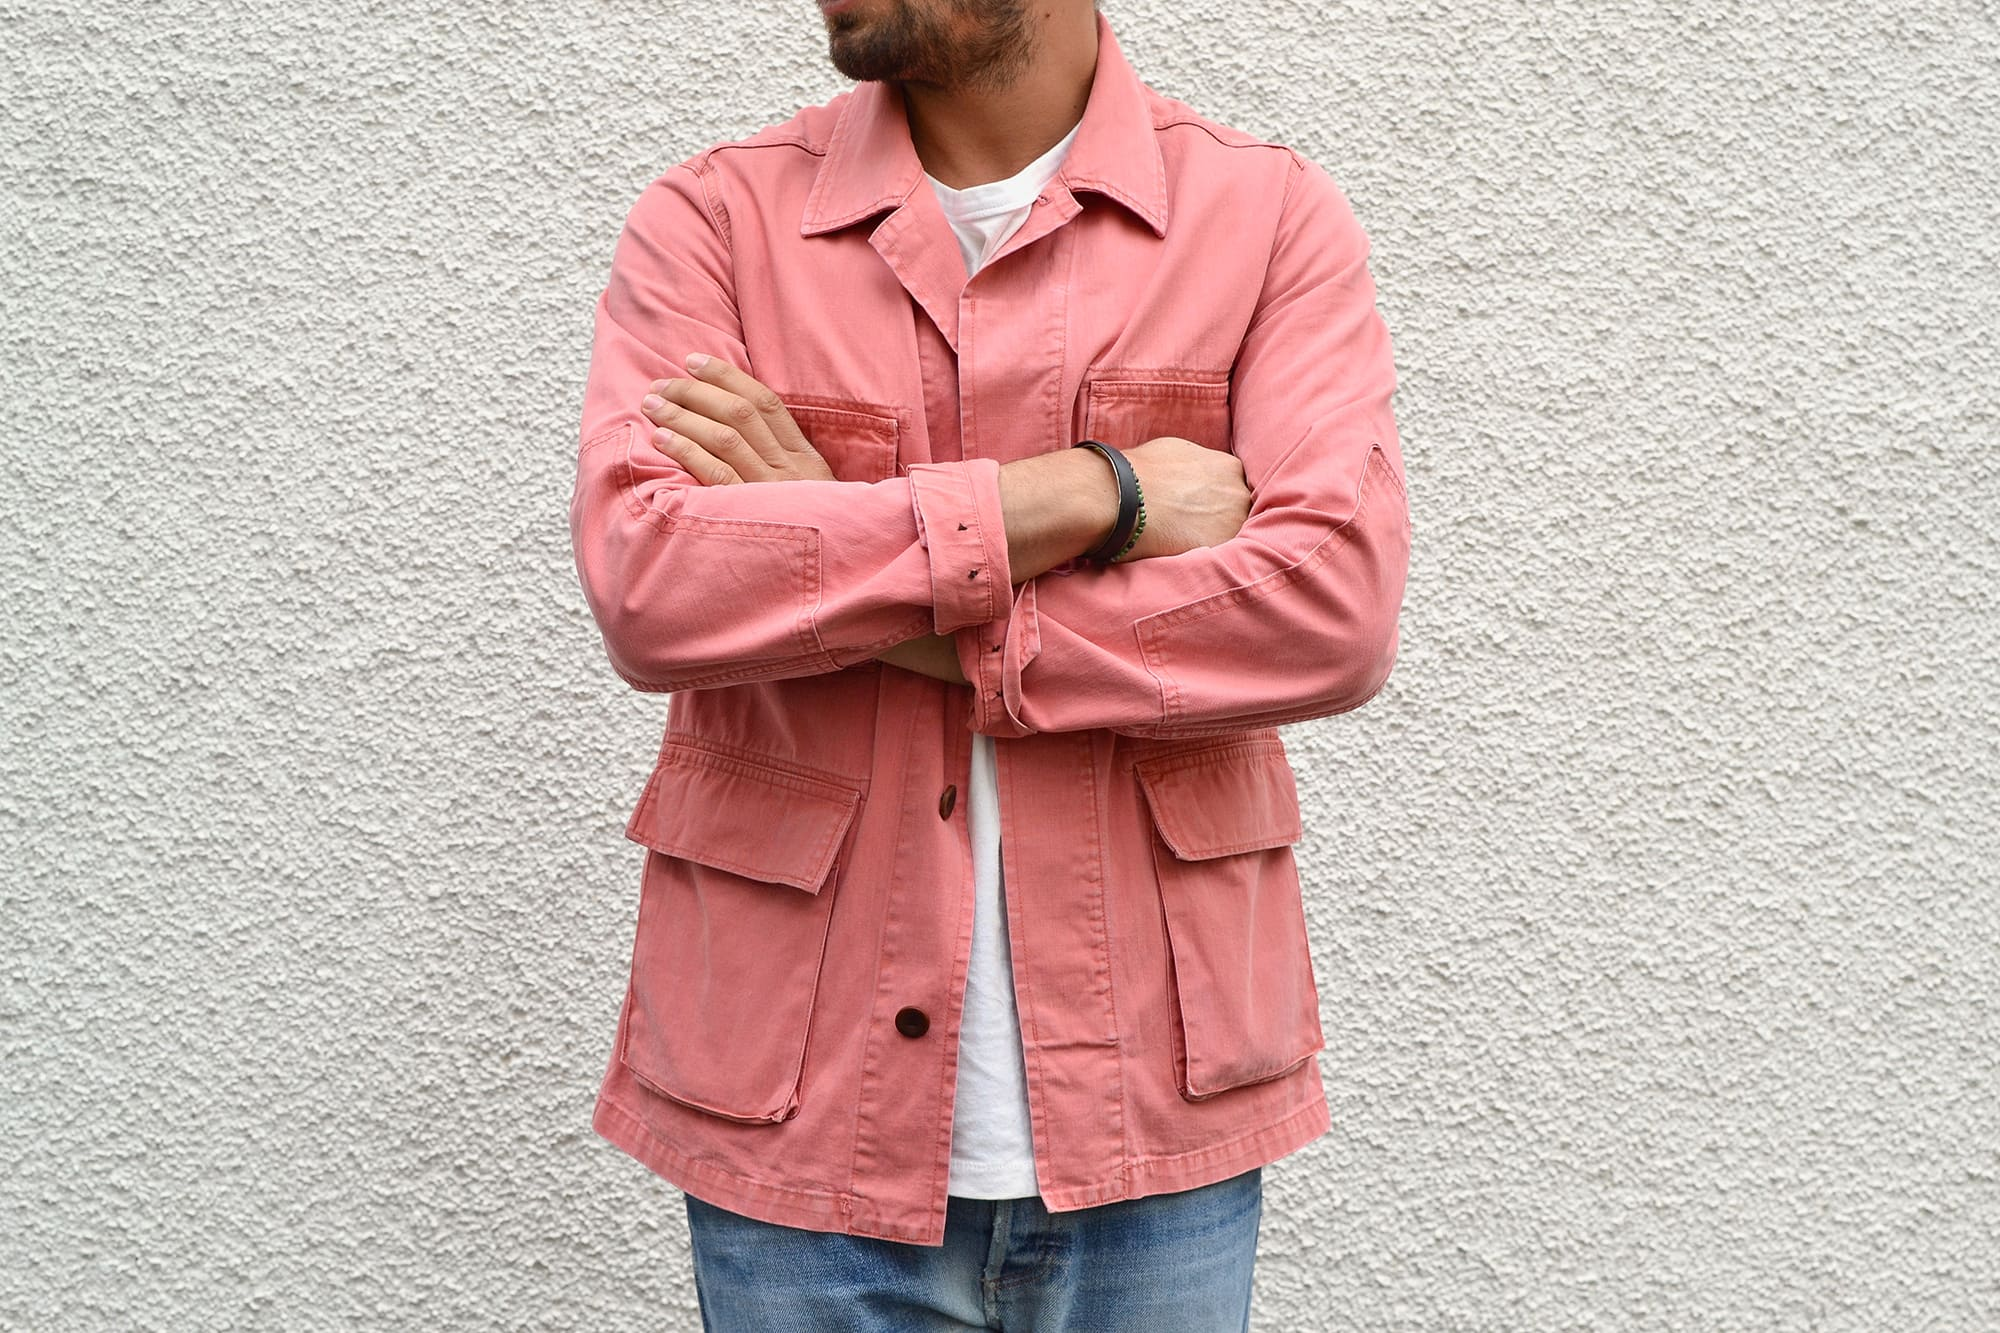 Visvim kilgore jacket salmon pink SS 2012 and white tee with apc butler jeans